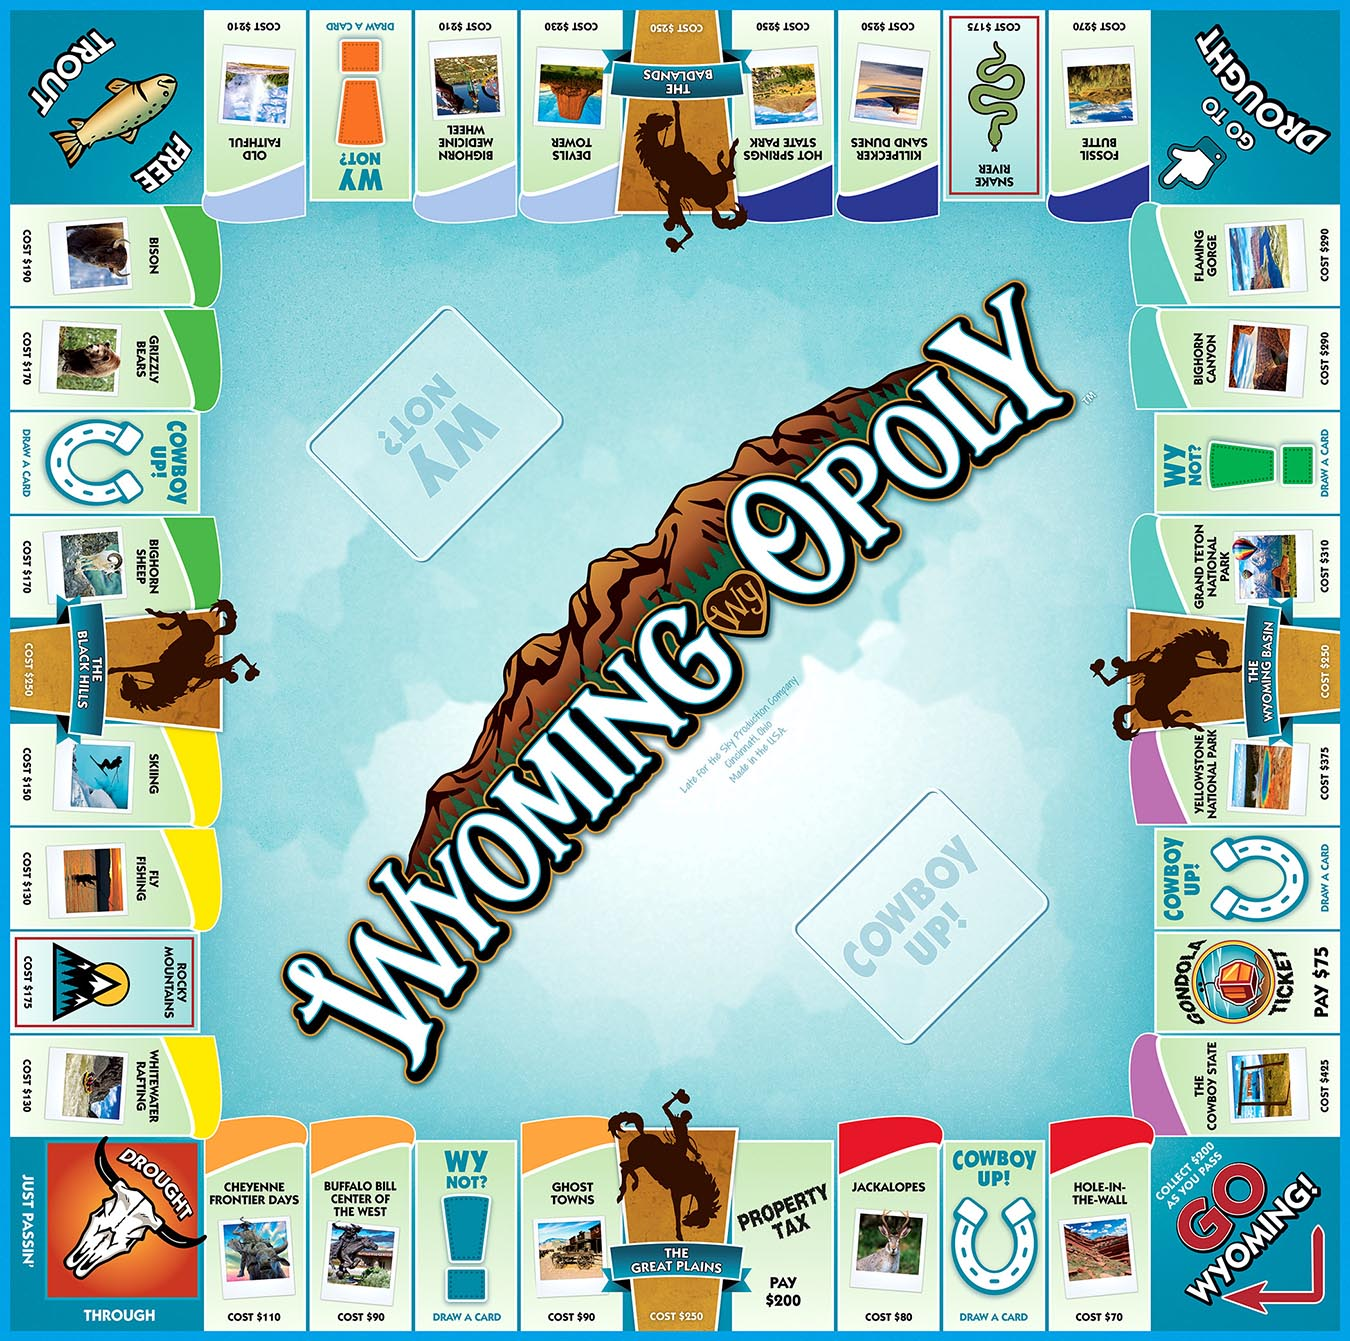 WYOMING-OPOLY Board Game